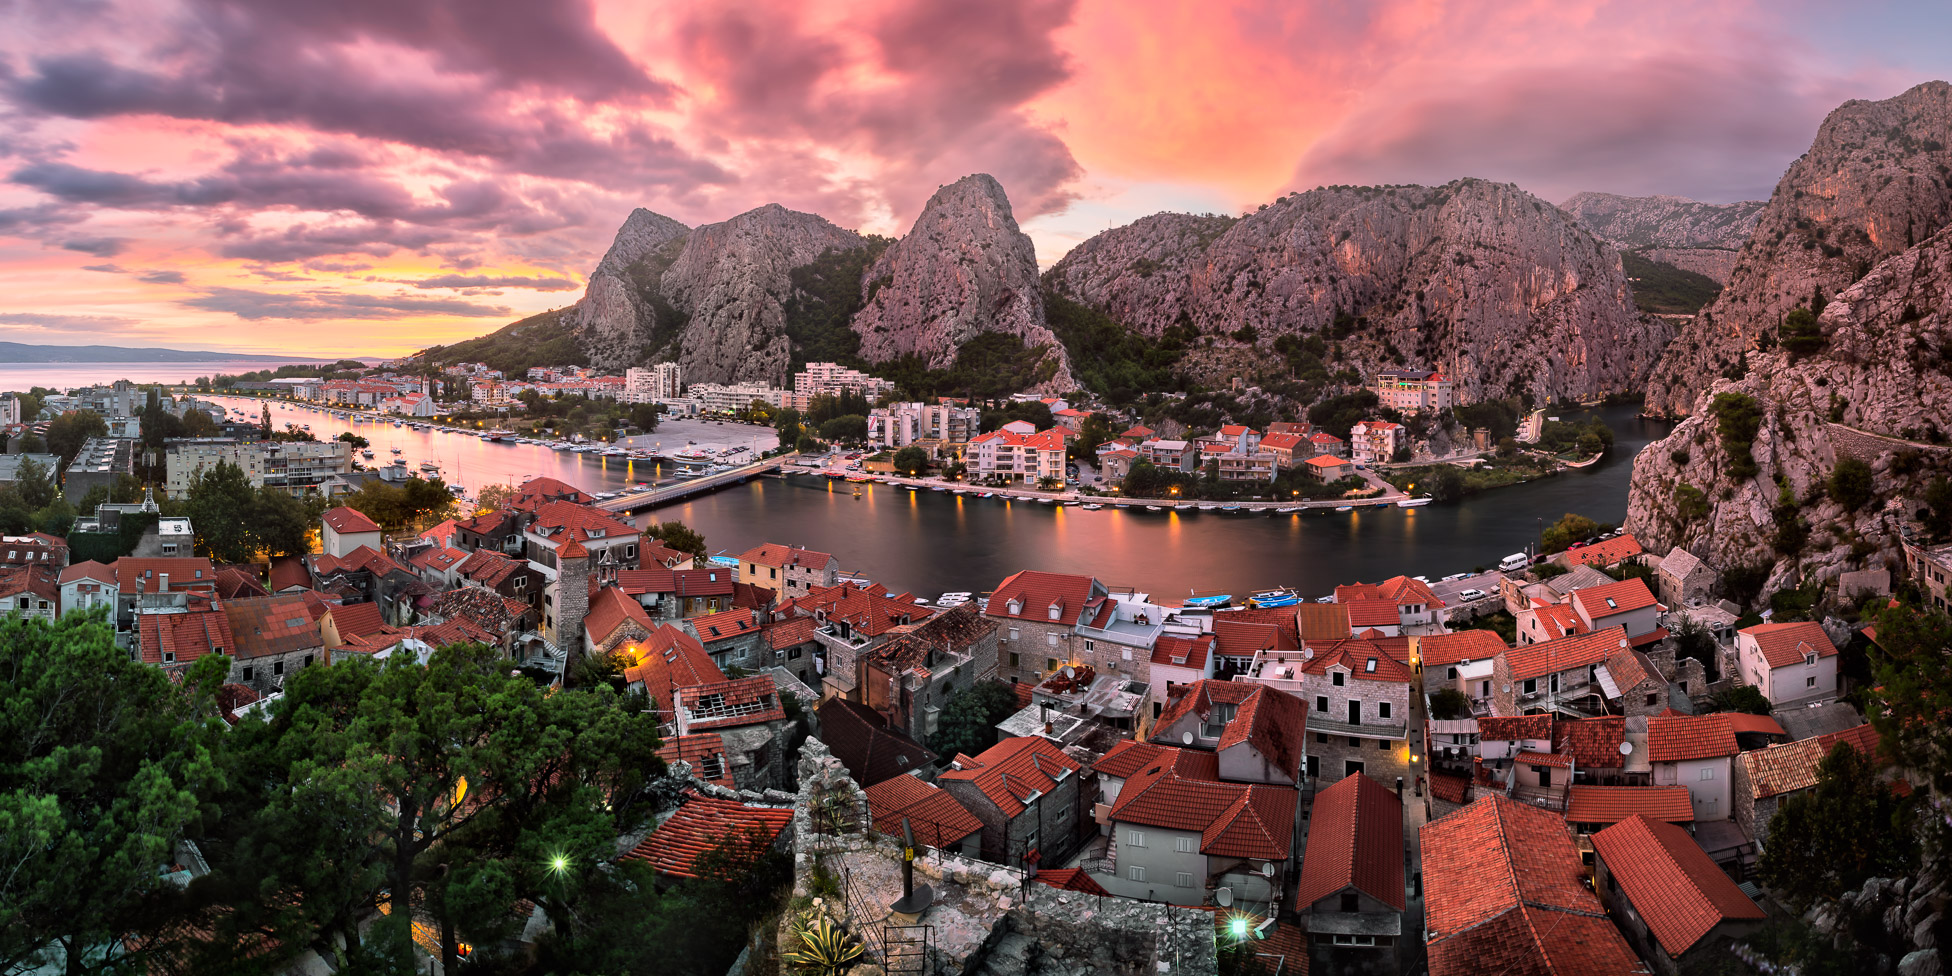 Aerial View of Omis and Cetina River at Dramatic Sunset, Dalmatia, Croatia